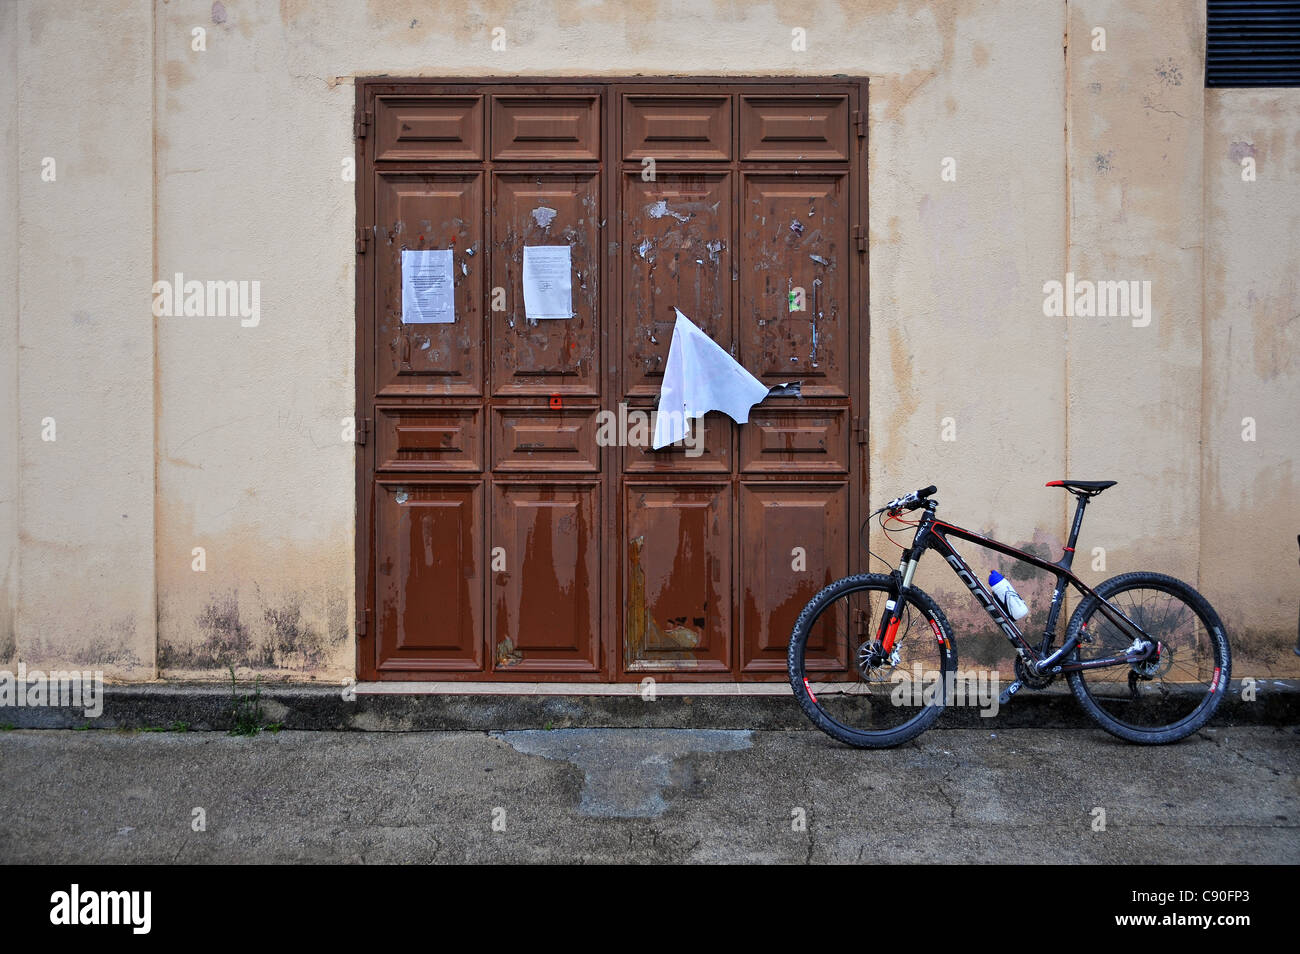 A mountain bike leaning against a gymnasium wall in this pictorial image from Andalusia Spain - Stock Image